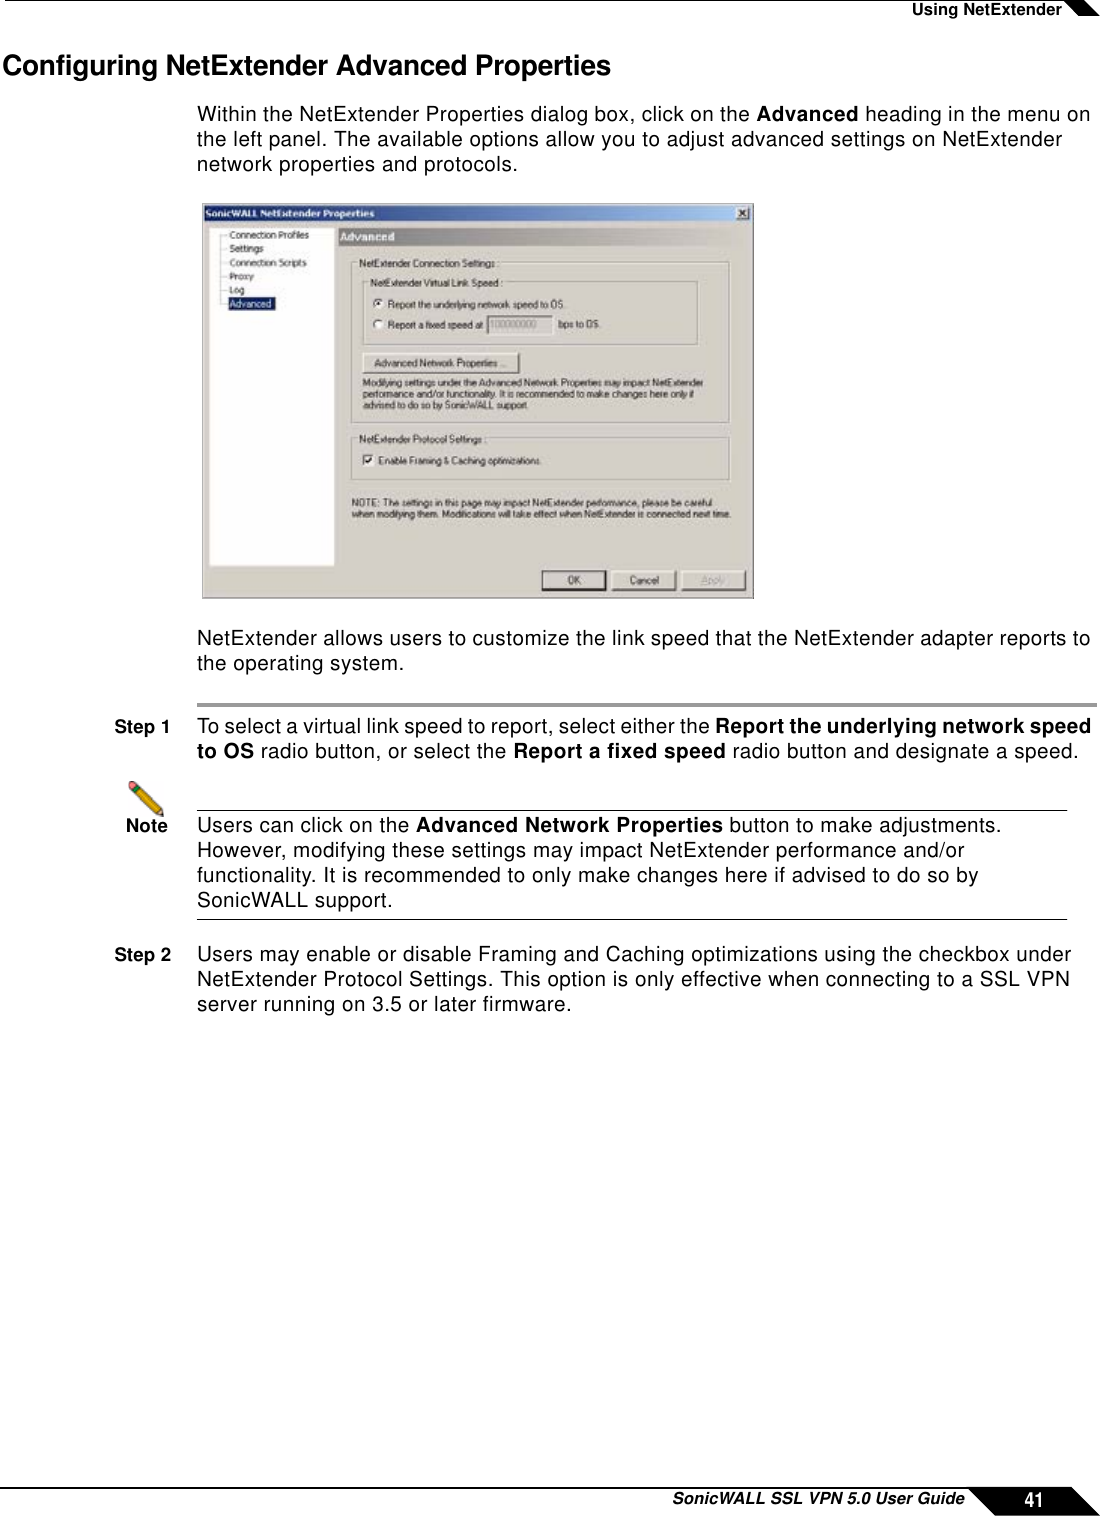 Sonicwall Network Router Ssl Vpn 5 0 Users Manual 5 0 User's Guide